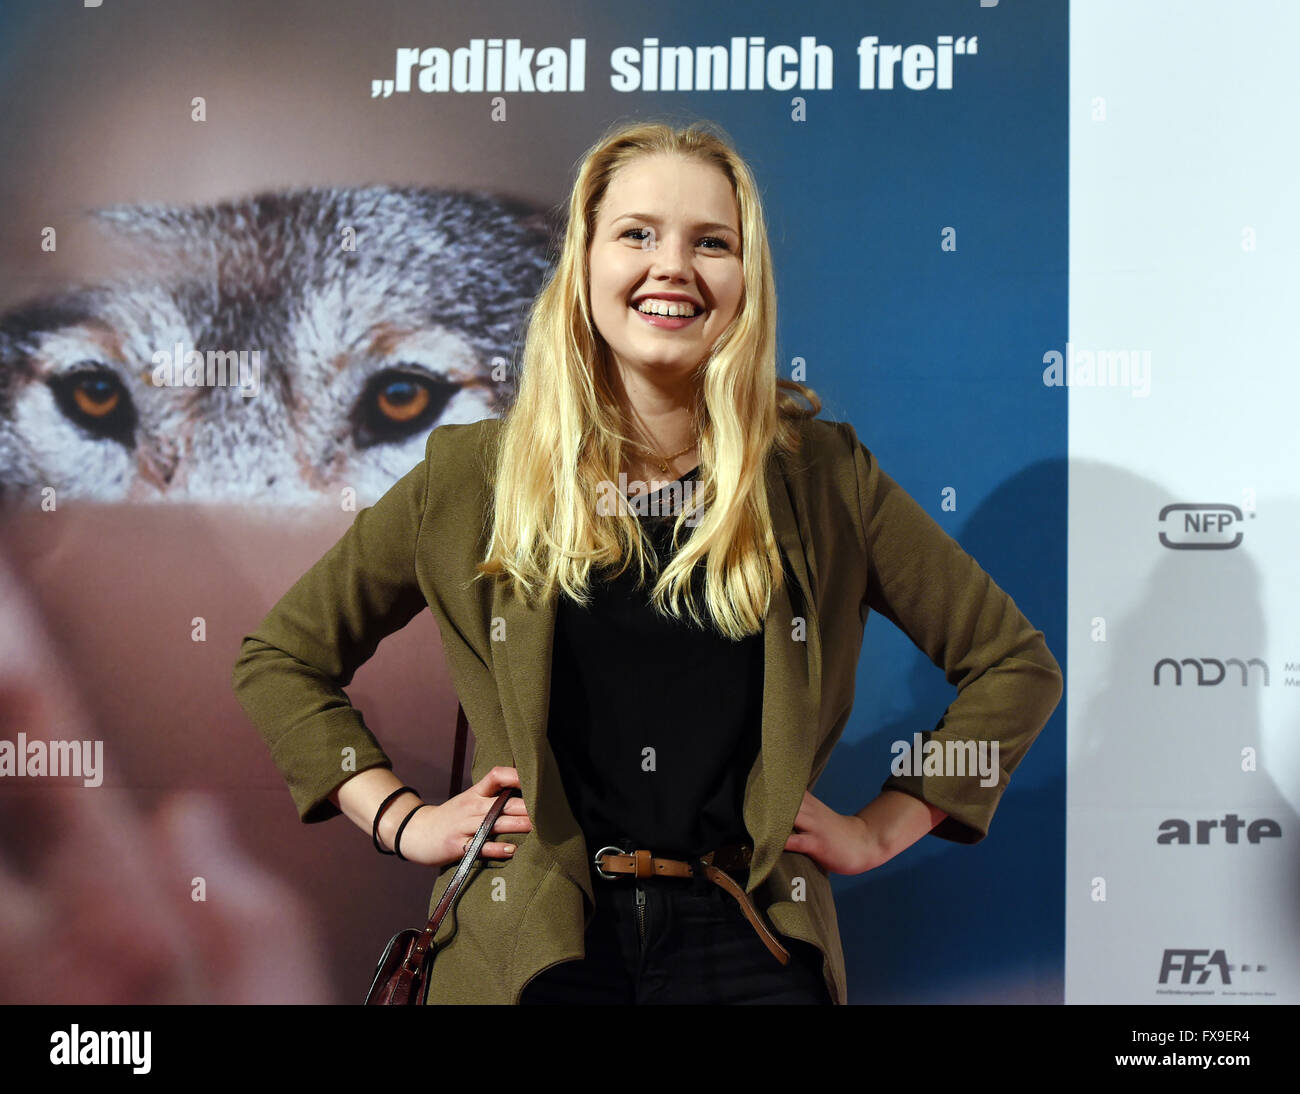 nicolette stock photos nicolette stock images alamy berlin 12th apr 2016 actress eva nuernberg arriving at the premiere